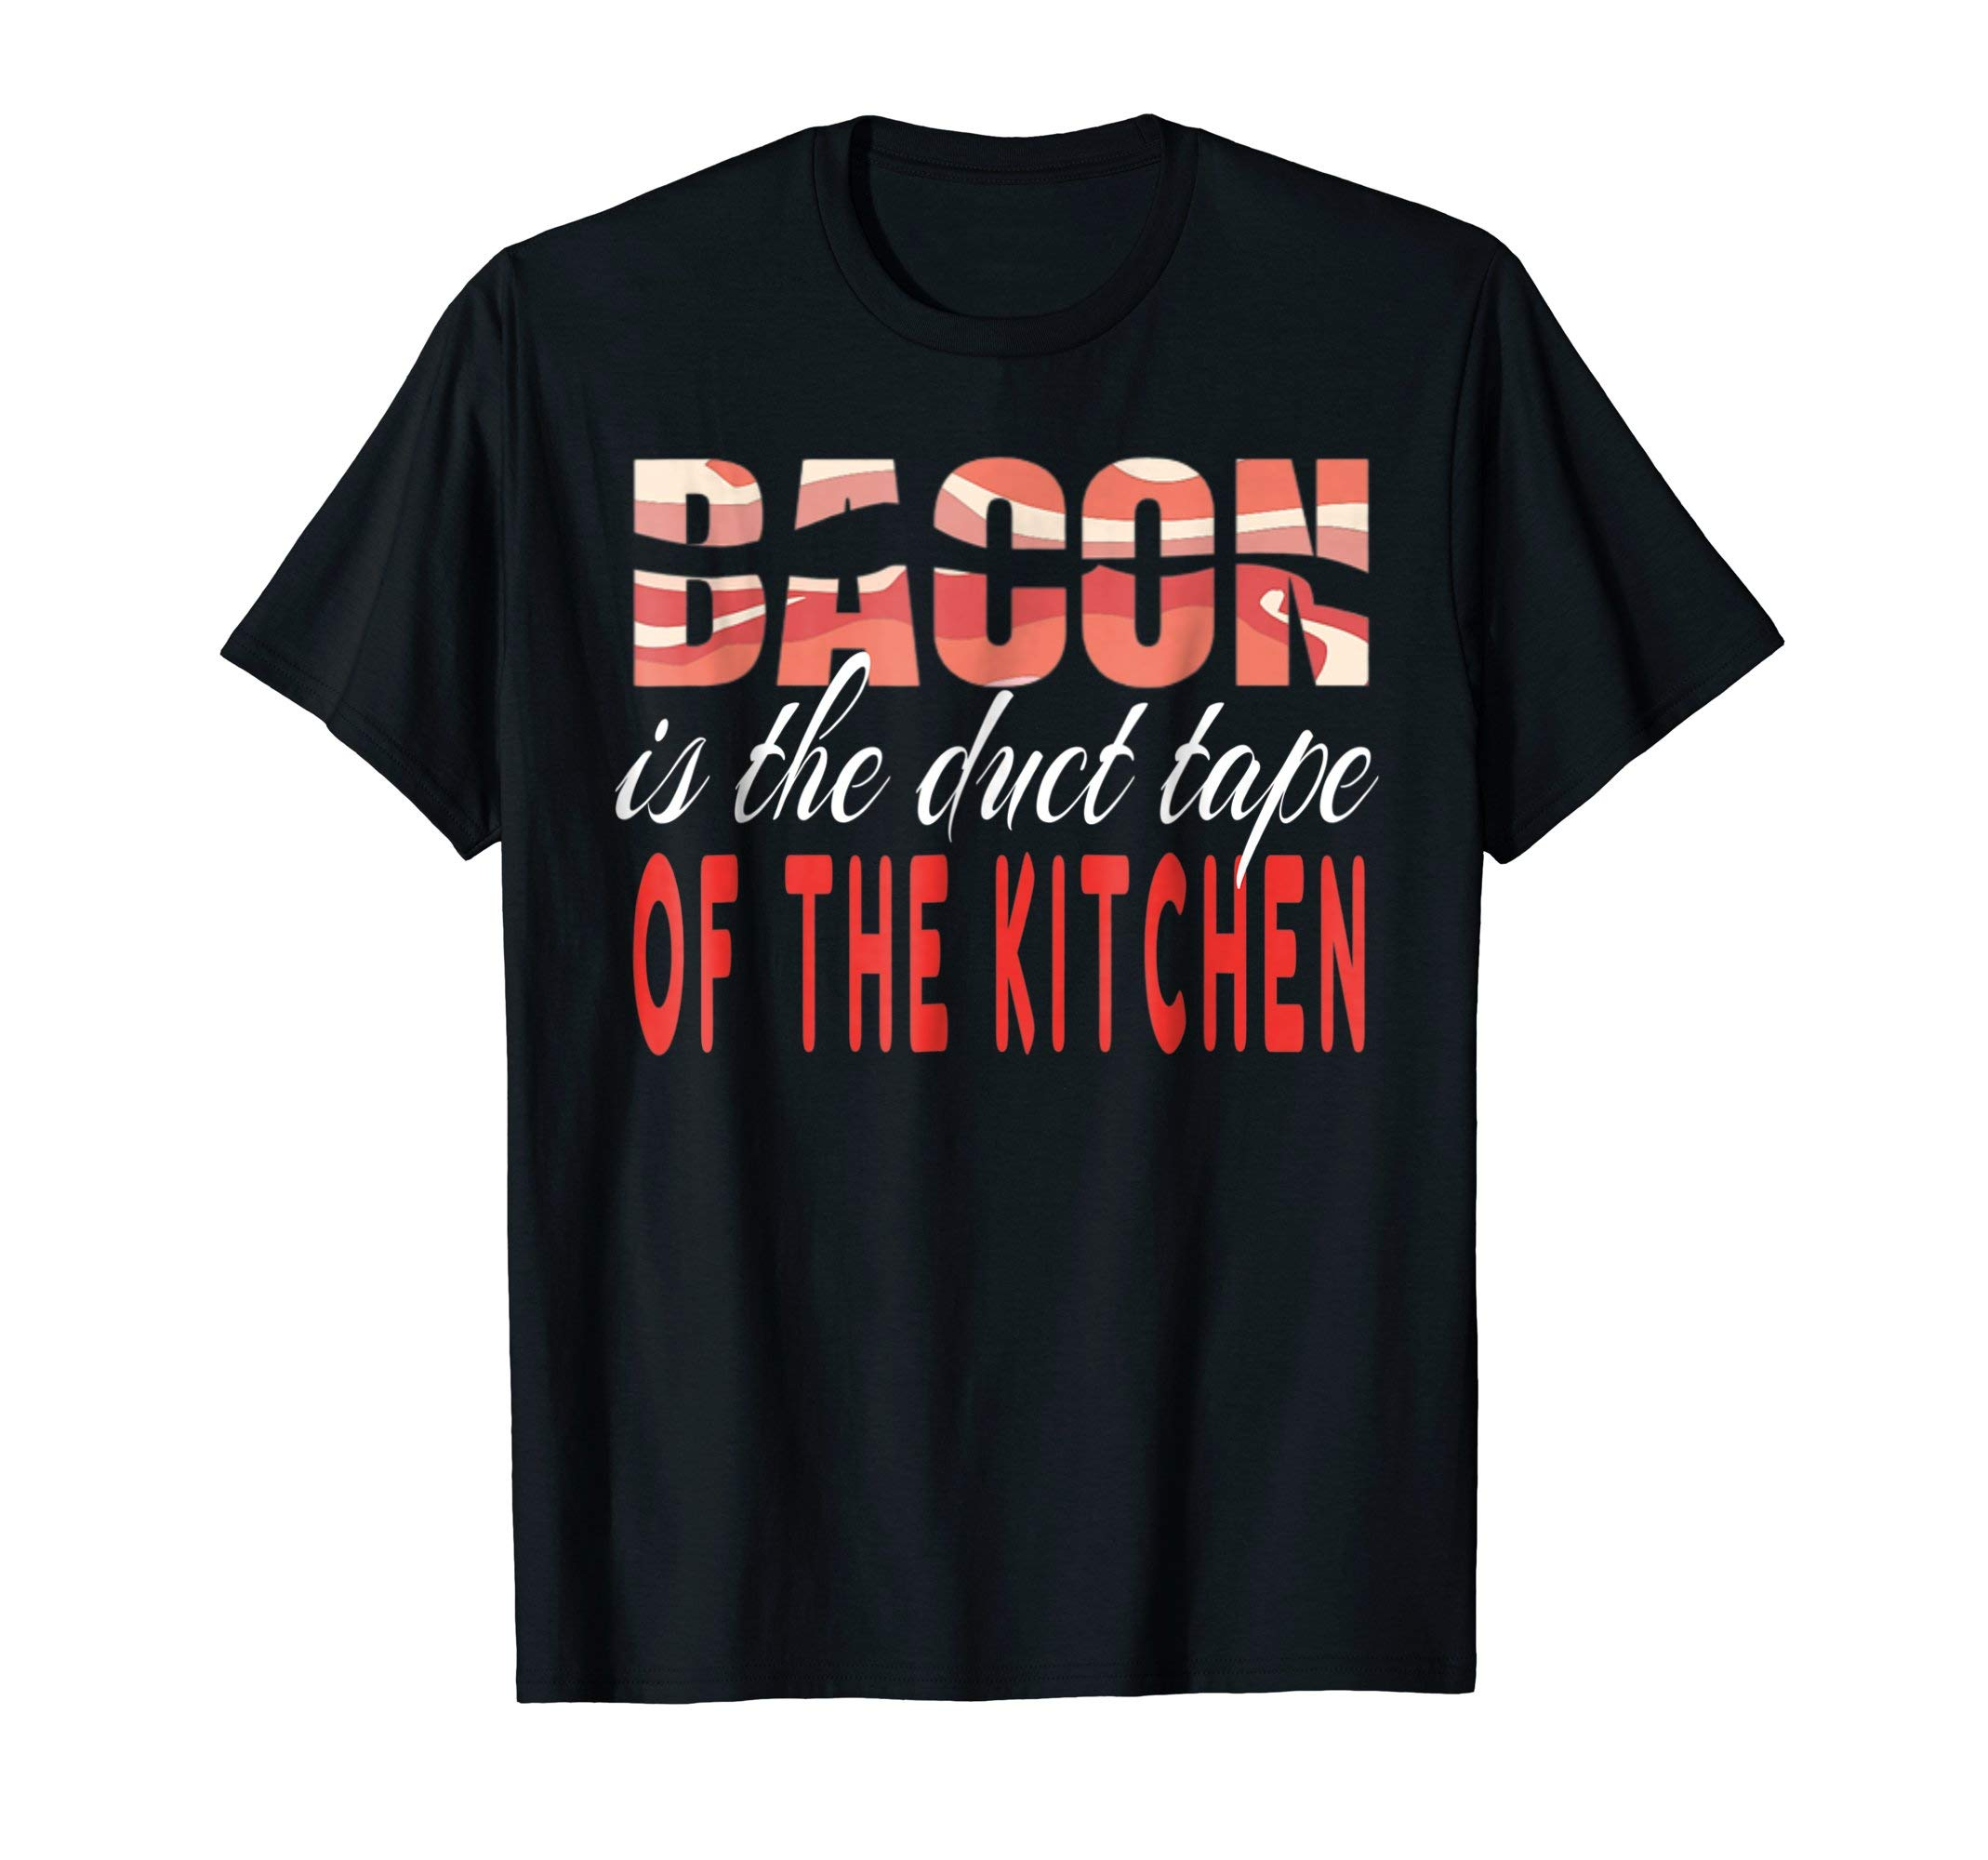 Bacon Is The Duct Tape Of The Kitchen Tshirt by Bacon Is The Duct Tape Of The Kitchen TShirt